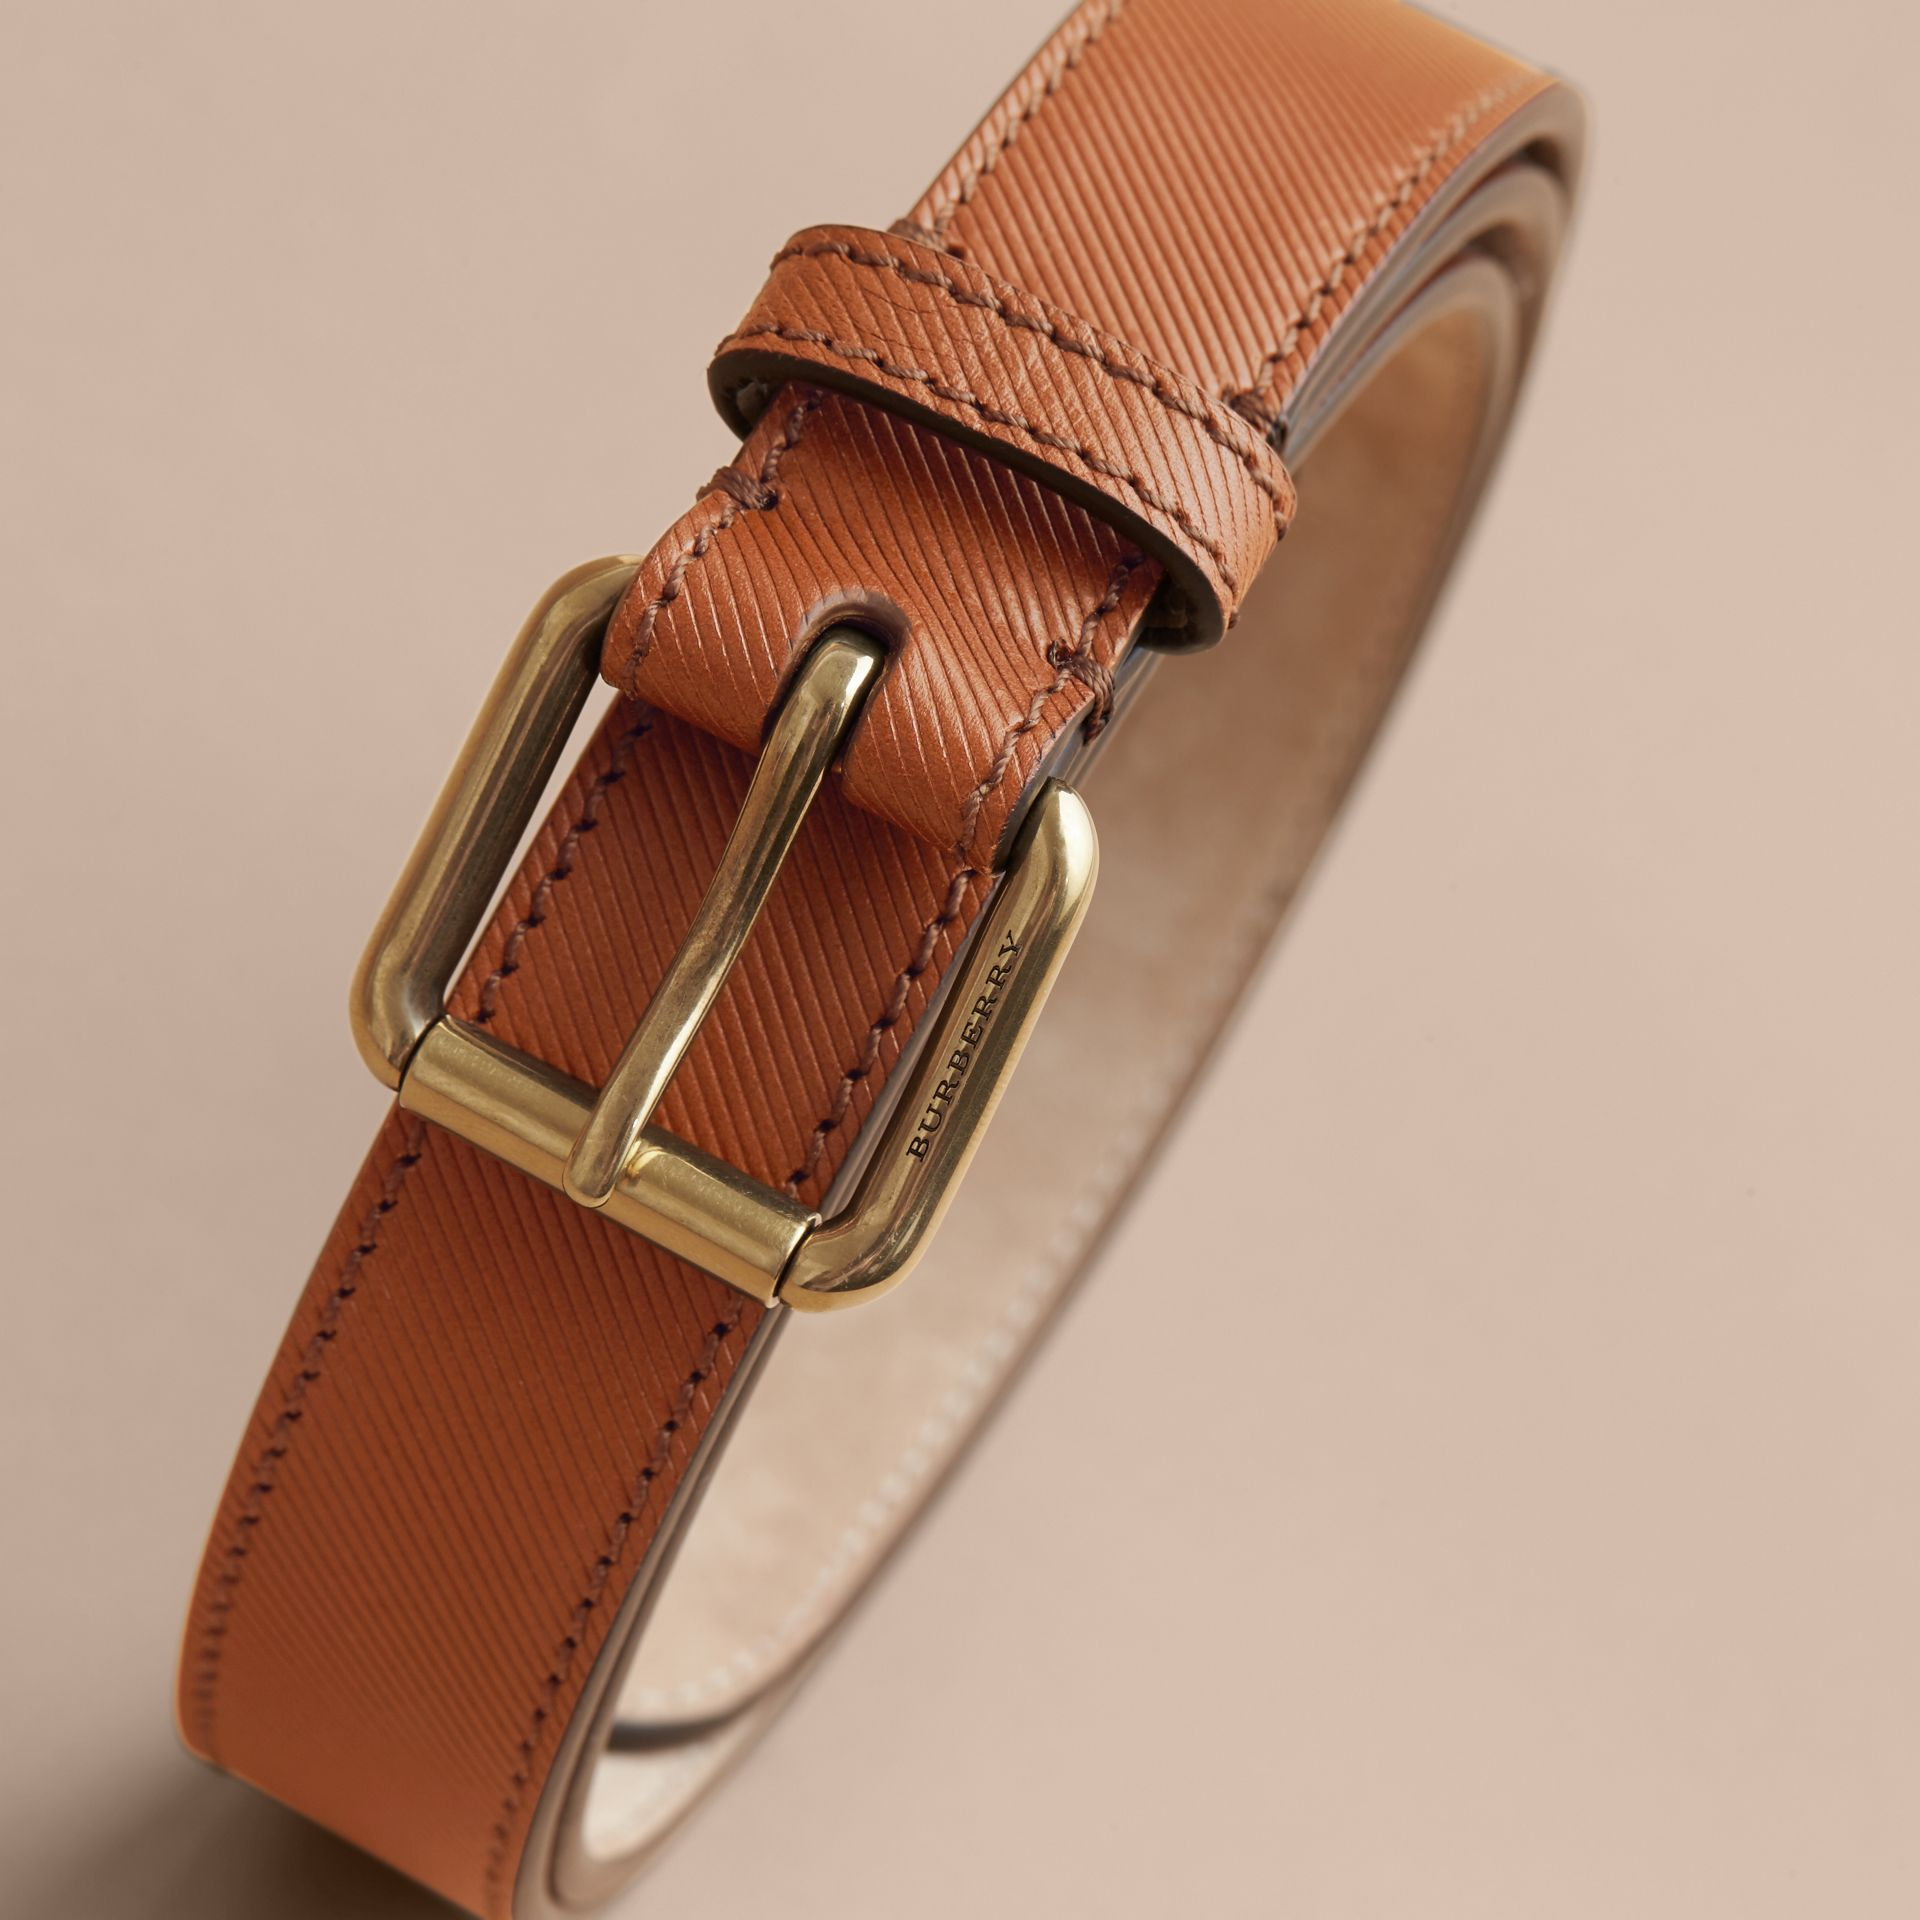 Trench Leather Belt in Tan - Men | Burberry - gallery image 4